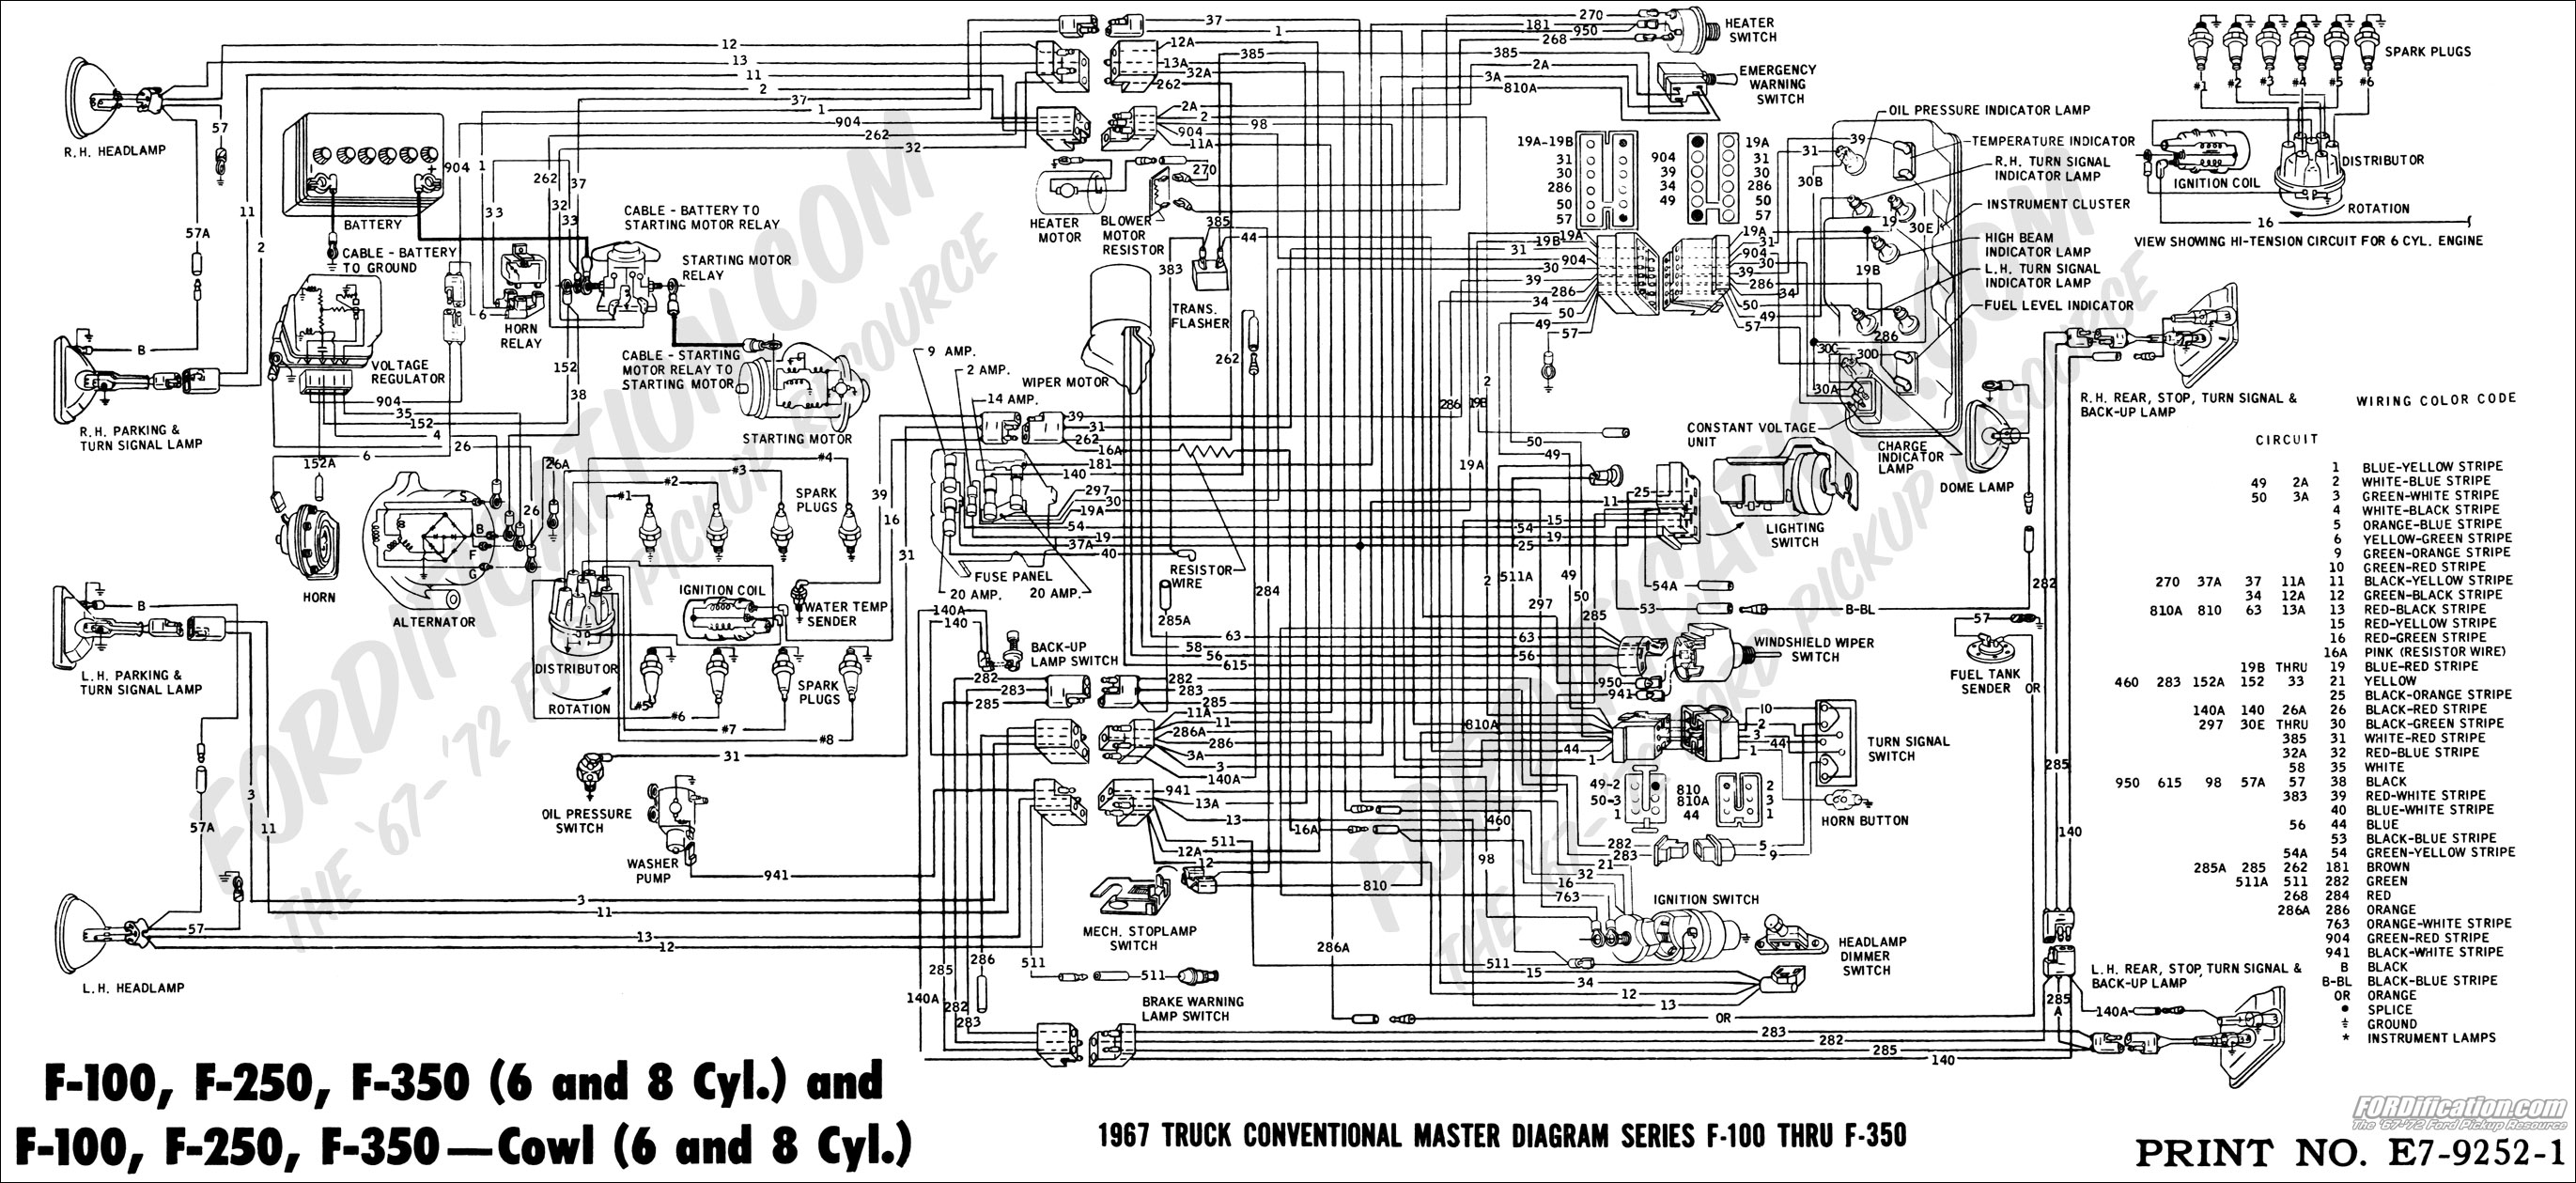 67masterdiagram ford truck technical drawings and schematics section h wiring 1999 ford ranger ignition wiring diagram at edmiracle.co